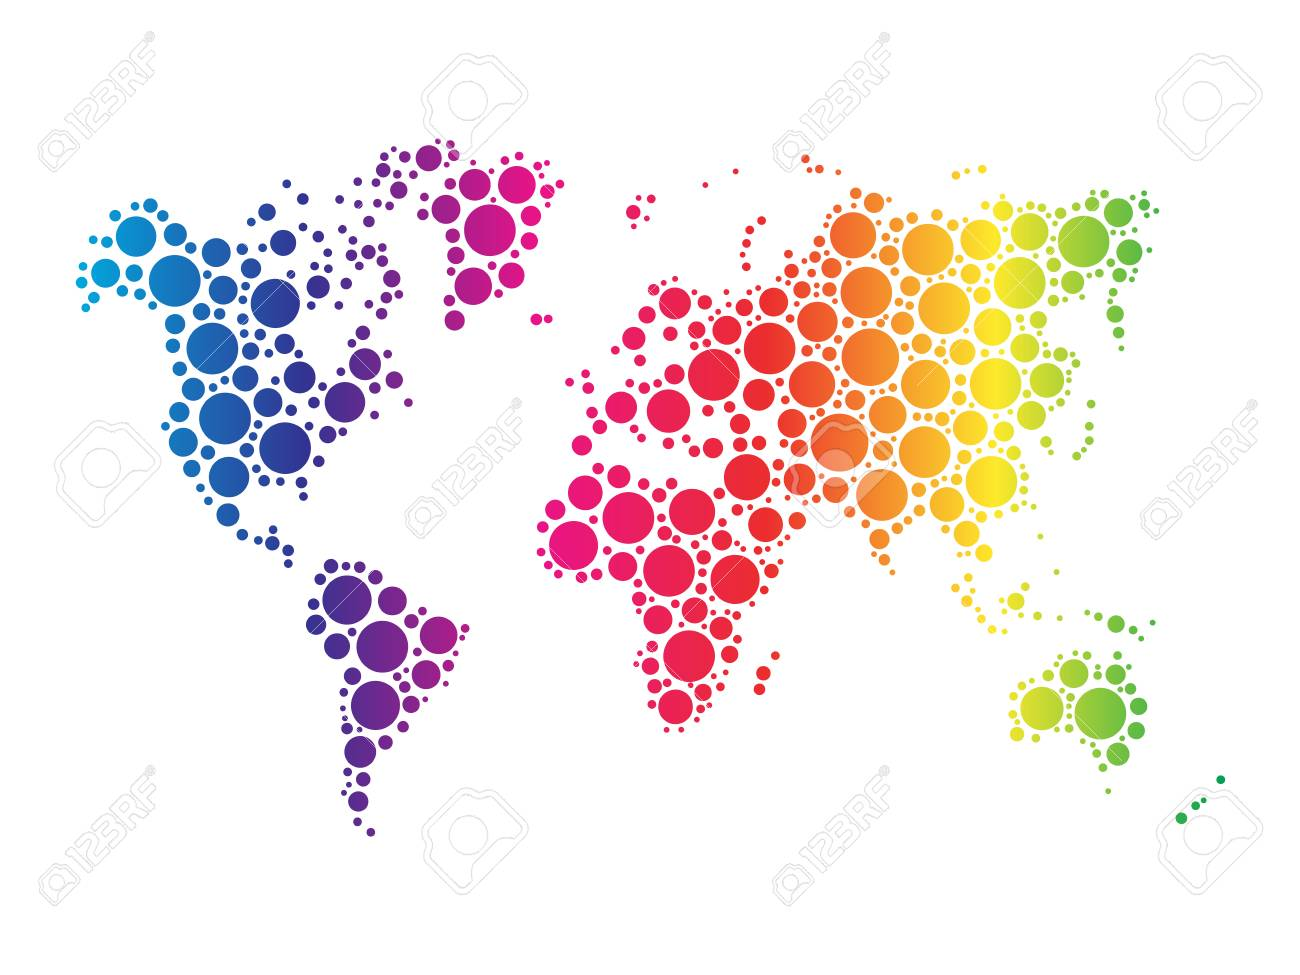 Stock Photo   World Map Wallpaper Mosaic Of Dots In Rainbow Spectrum Colors  On White Background.